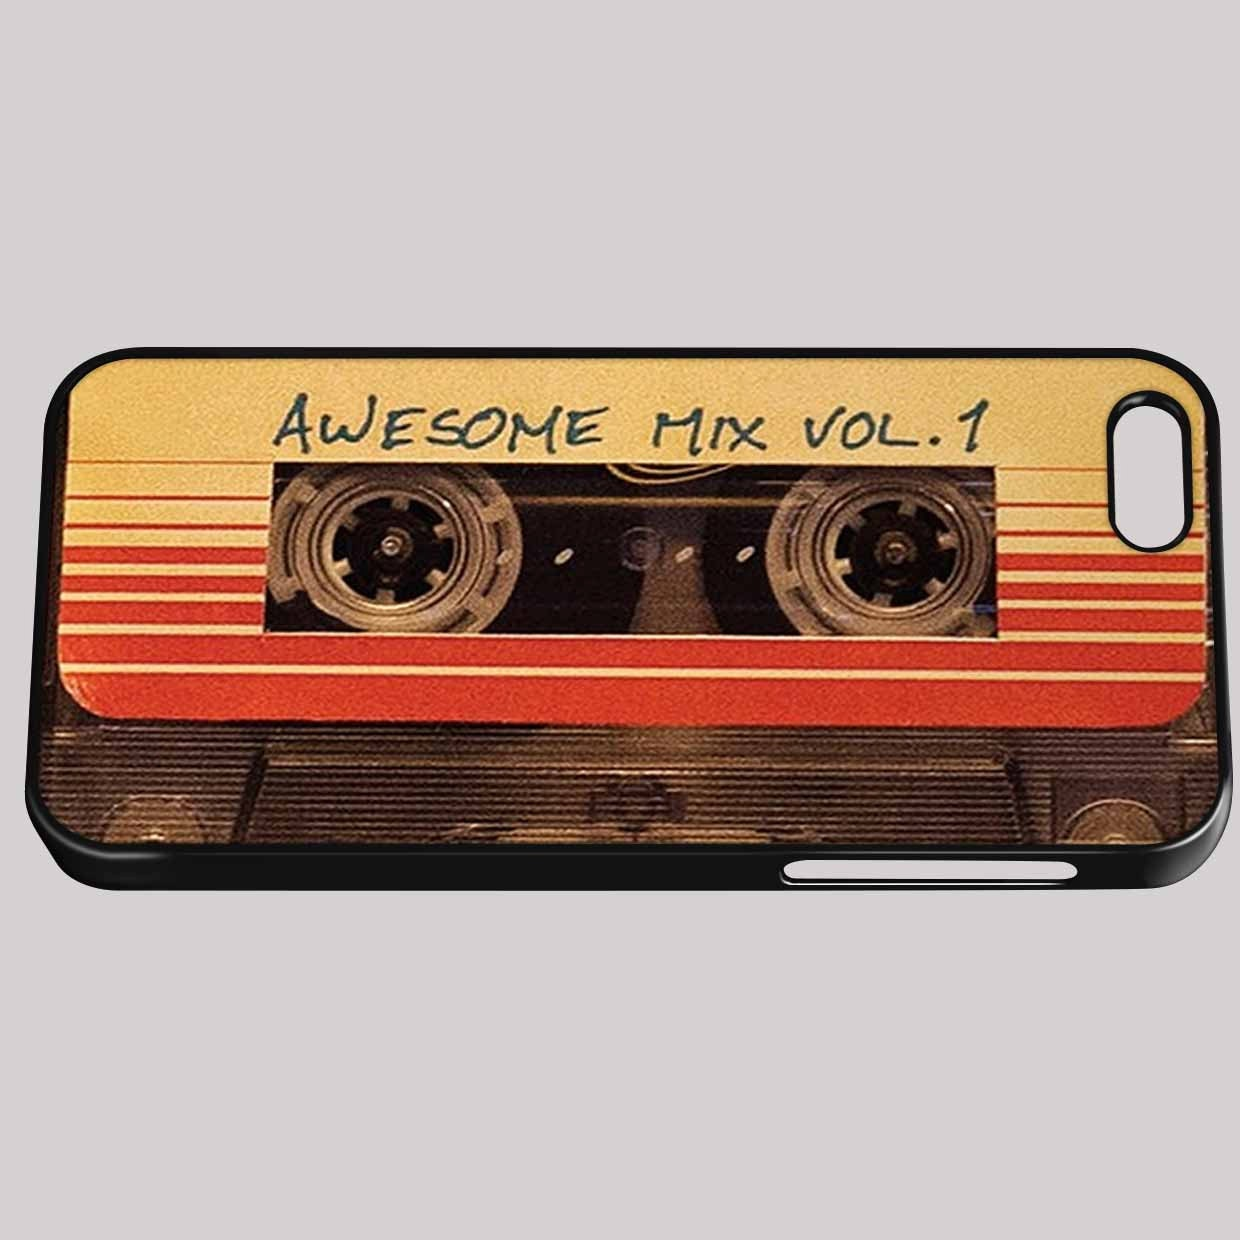 Case Design create your own phone case cheap : Mix Tape Retro Funny Quirky iPhone Cover 4/4S by oneoffboutique123